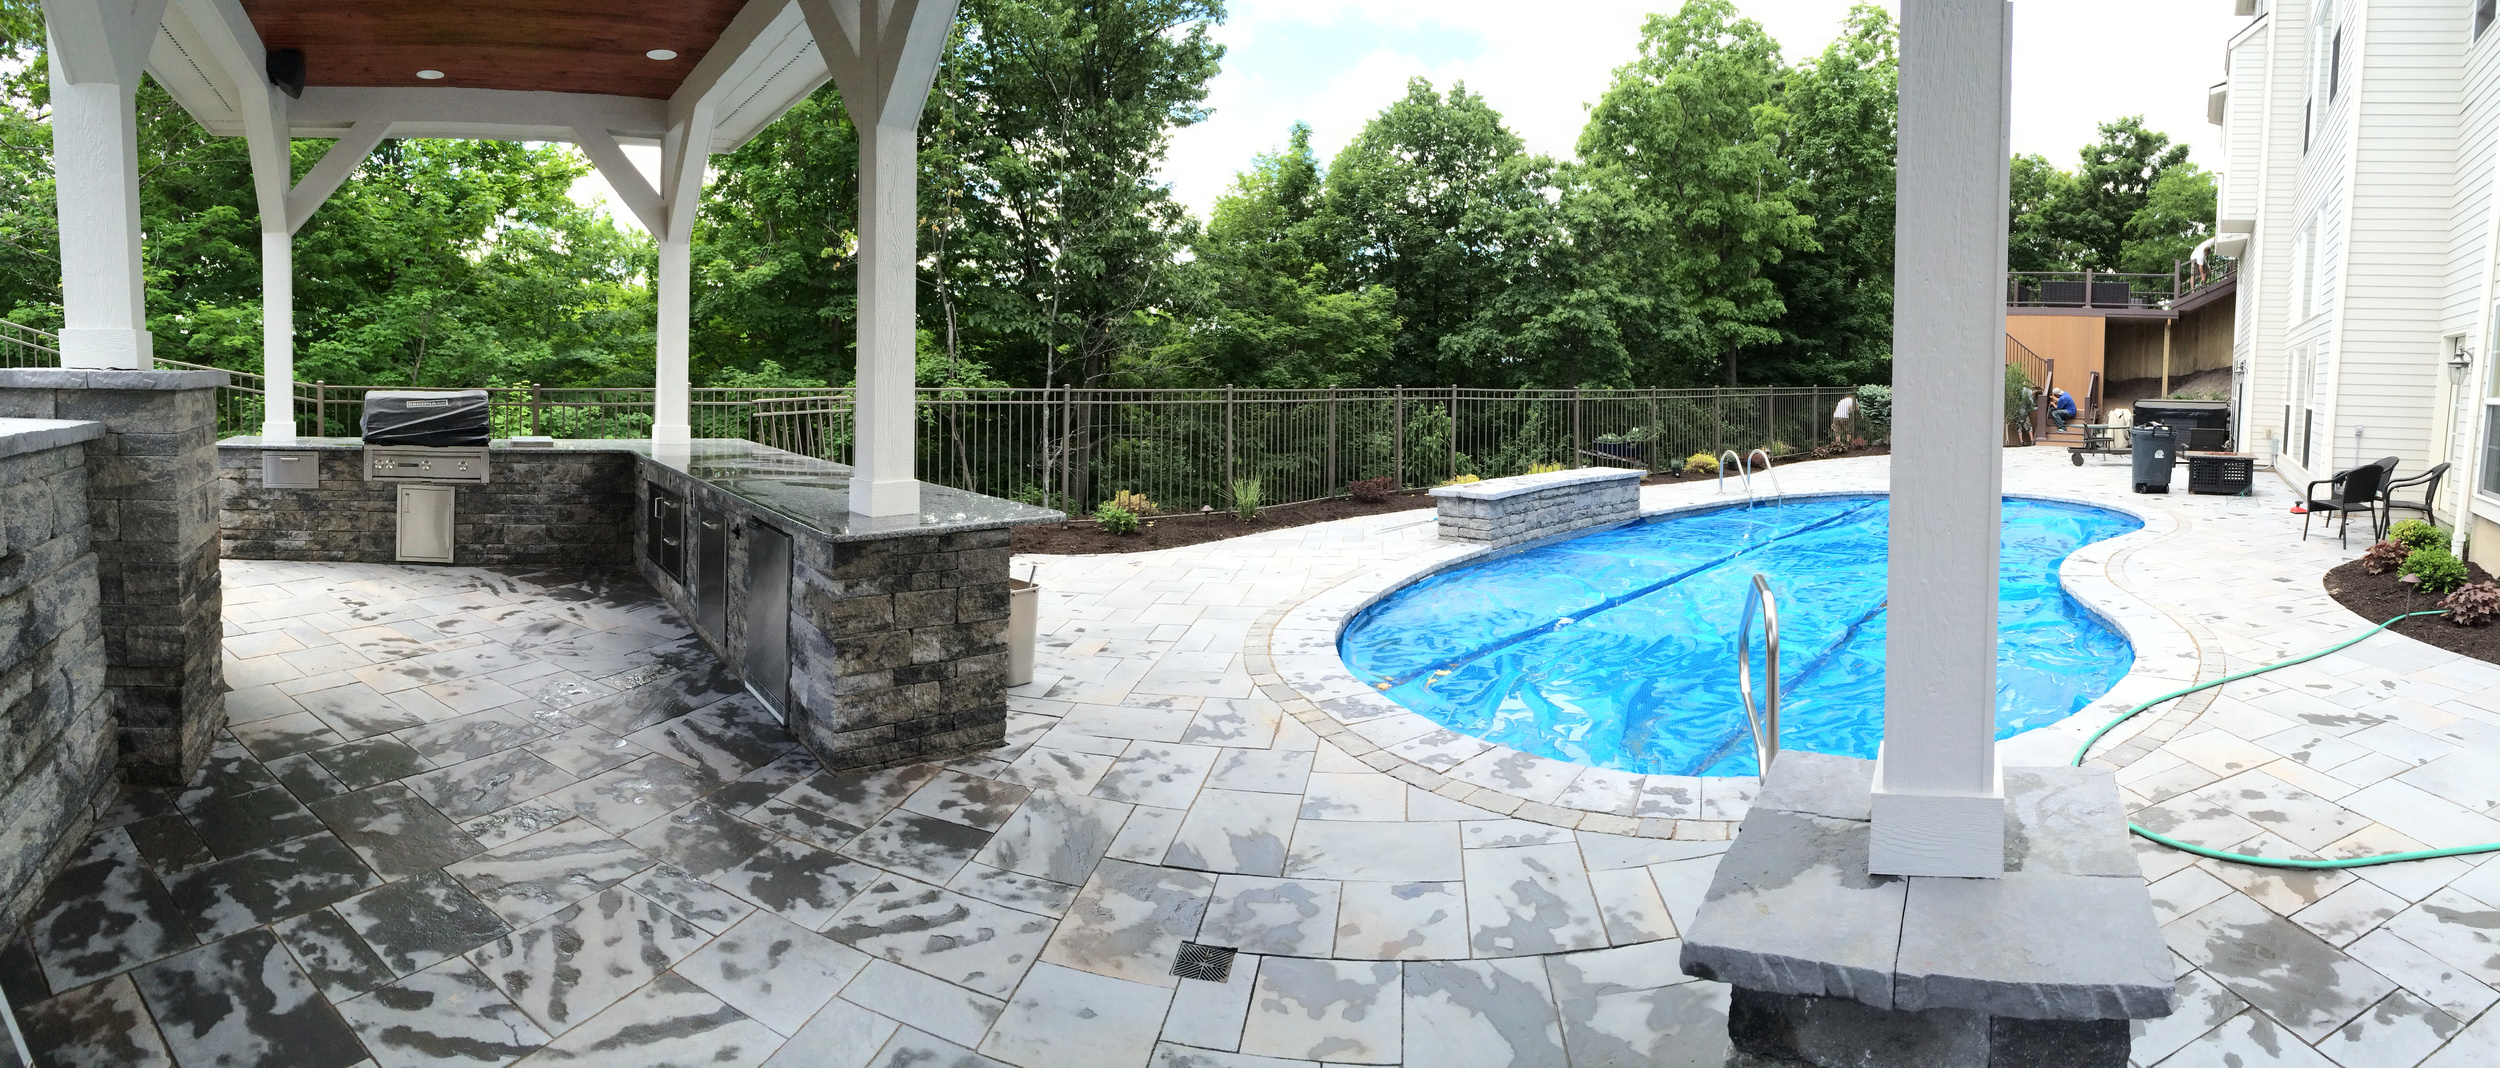 Pool Project with Outdoor Kitchen